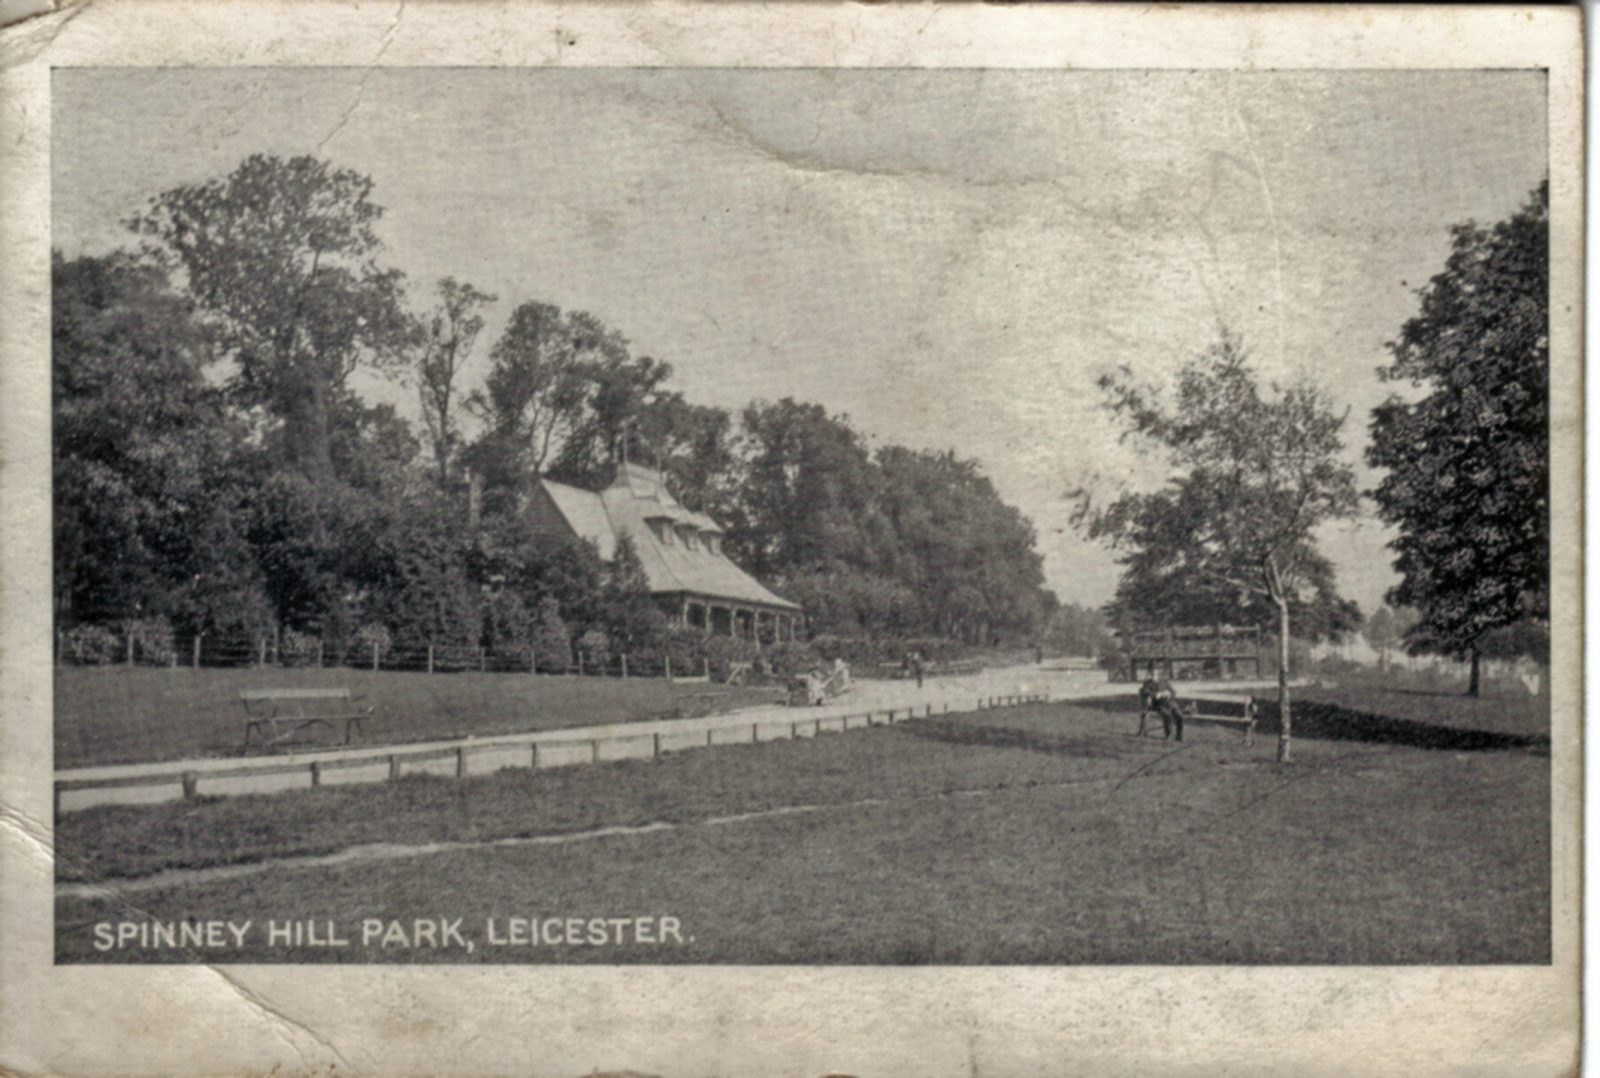 Spinney Hill Park, Leicester. 1901-1920: The Pavilion and broad avenue with children in prams. (File:1199)